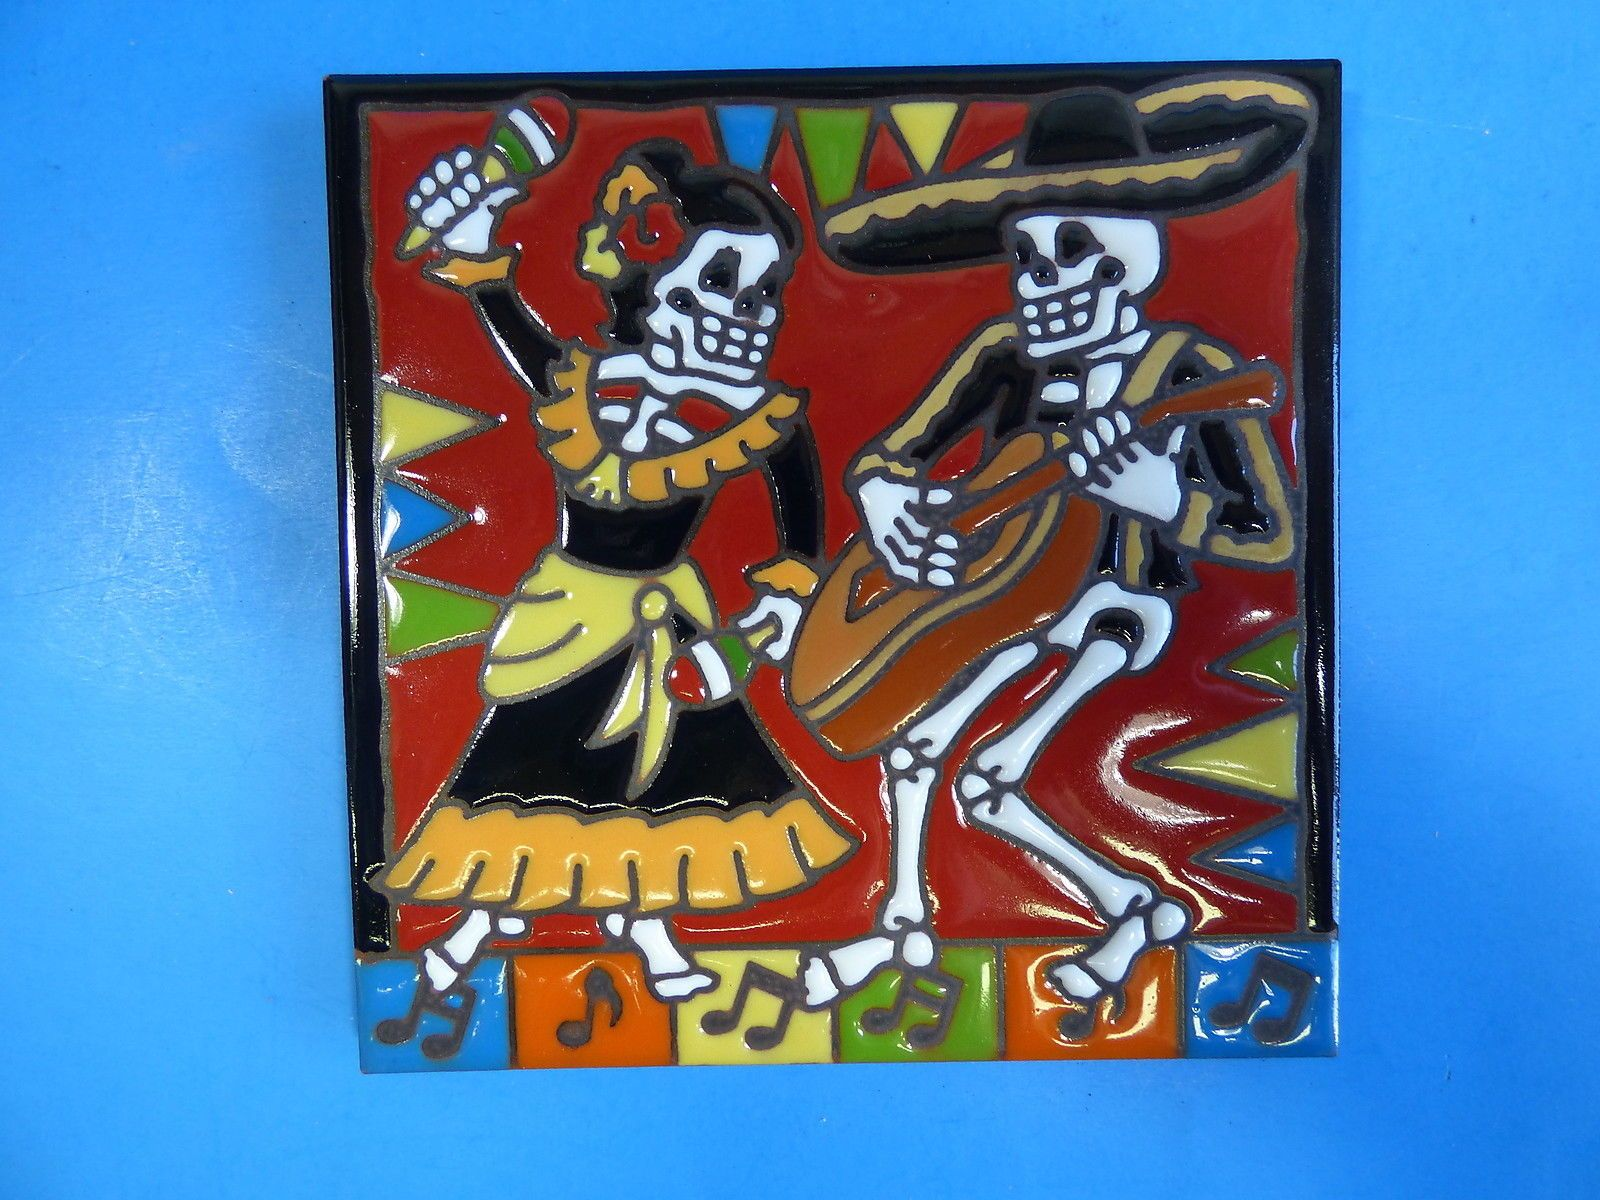 Ceramic art tile 6x6 day of the dead skelton mexican dance couple ceramic art tile 6x6 day of the dead skelton mexican dance couple trivet i8 dailygadgetfo Choice Image